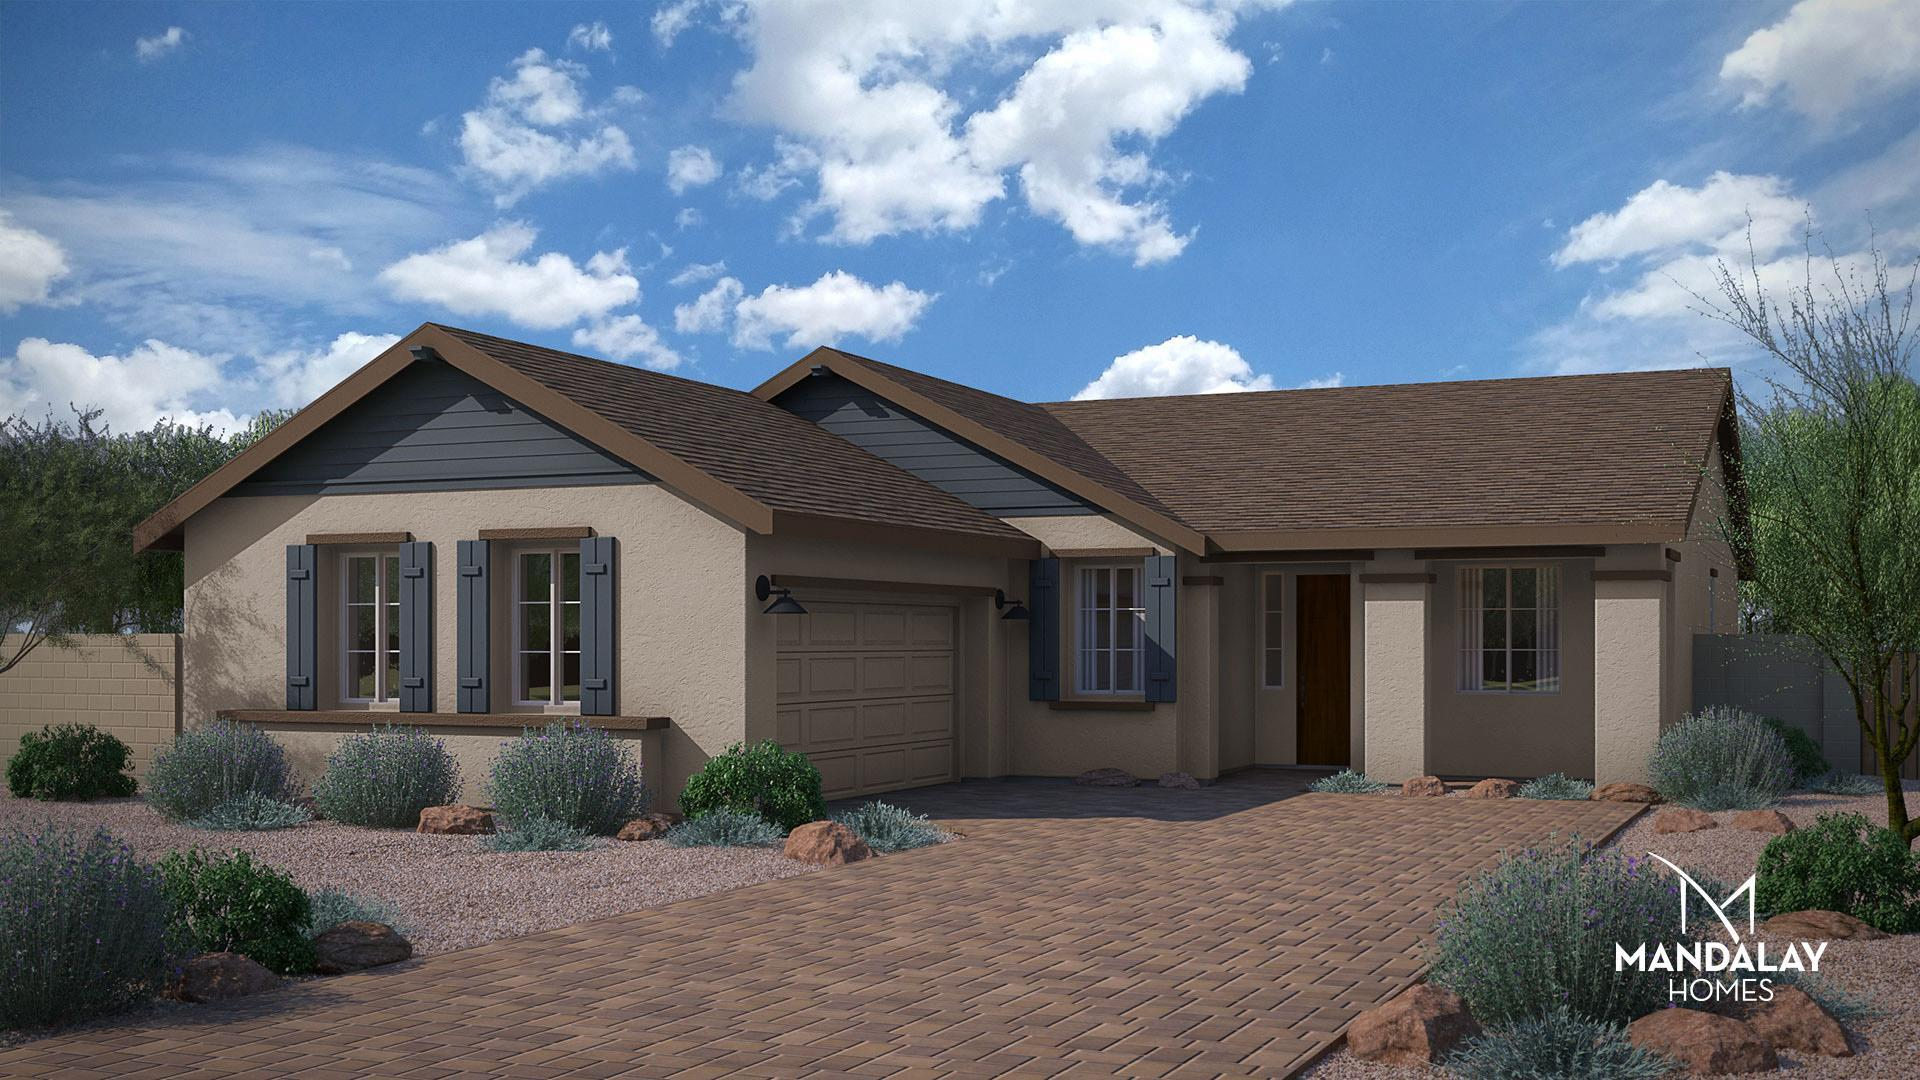 Exterior featured in the Vista By Mandalay Homes in Prescott, AZ